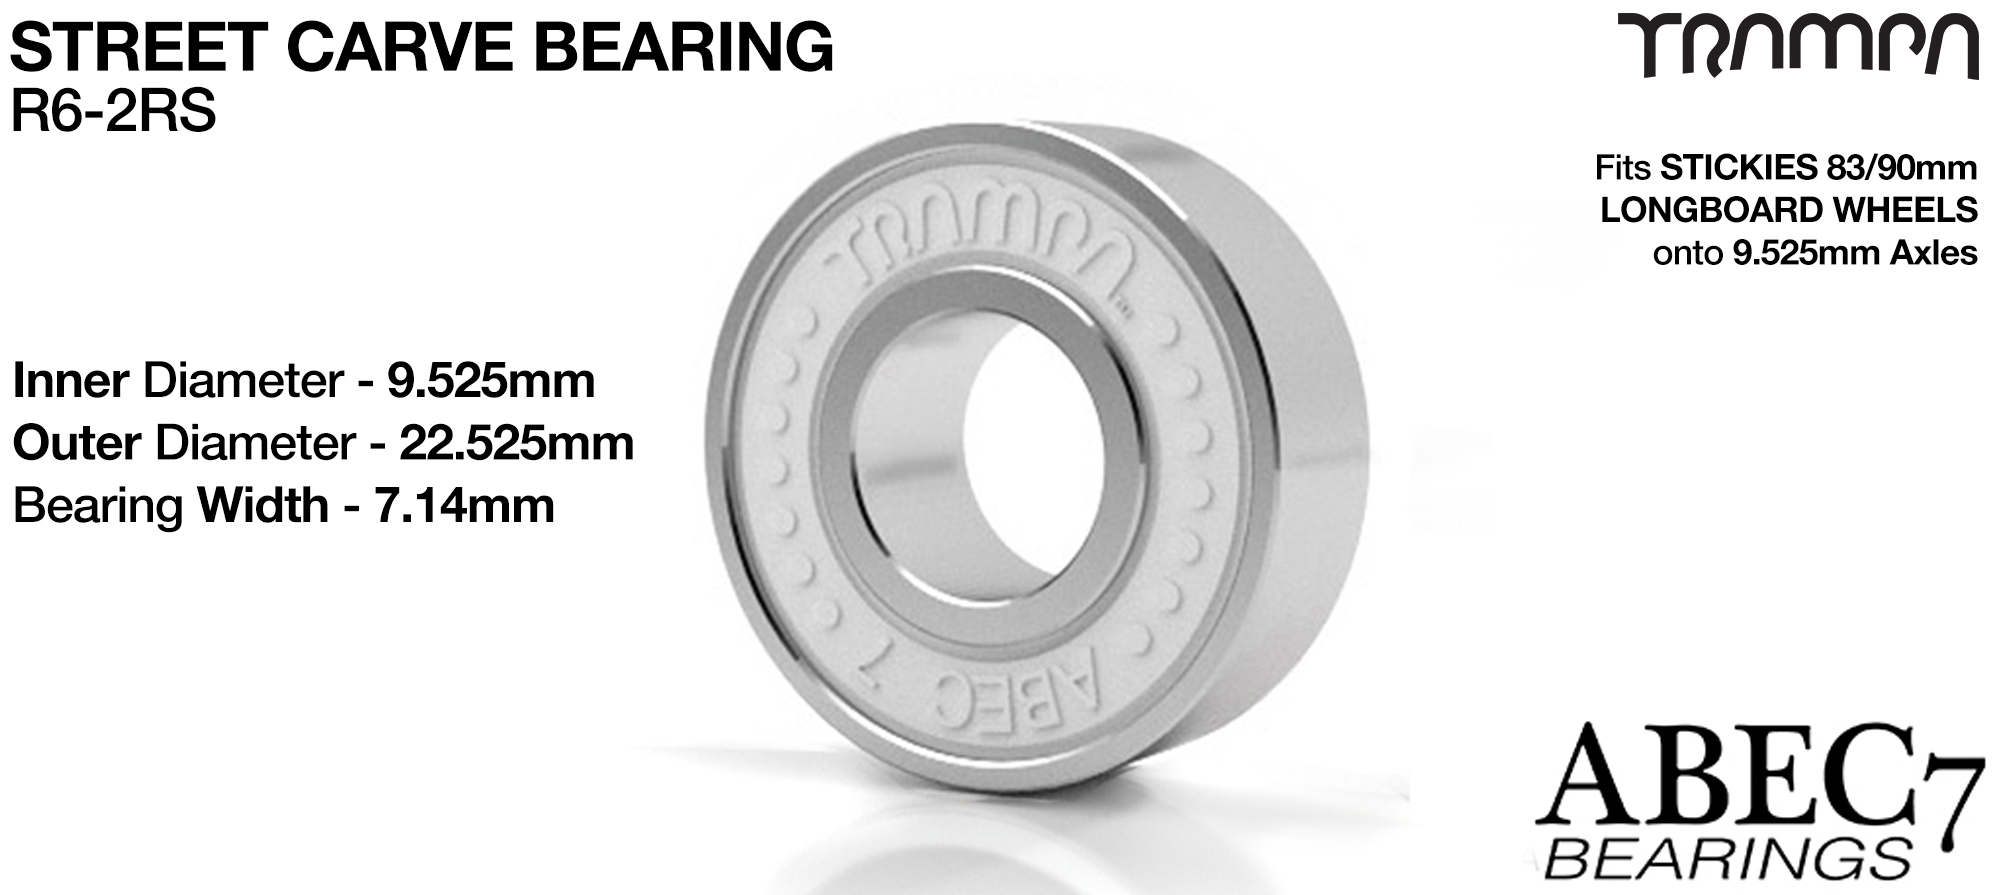 WHITE 9.525 x 22.225mm R6-2RS Bearings